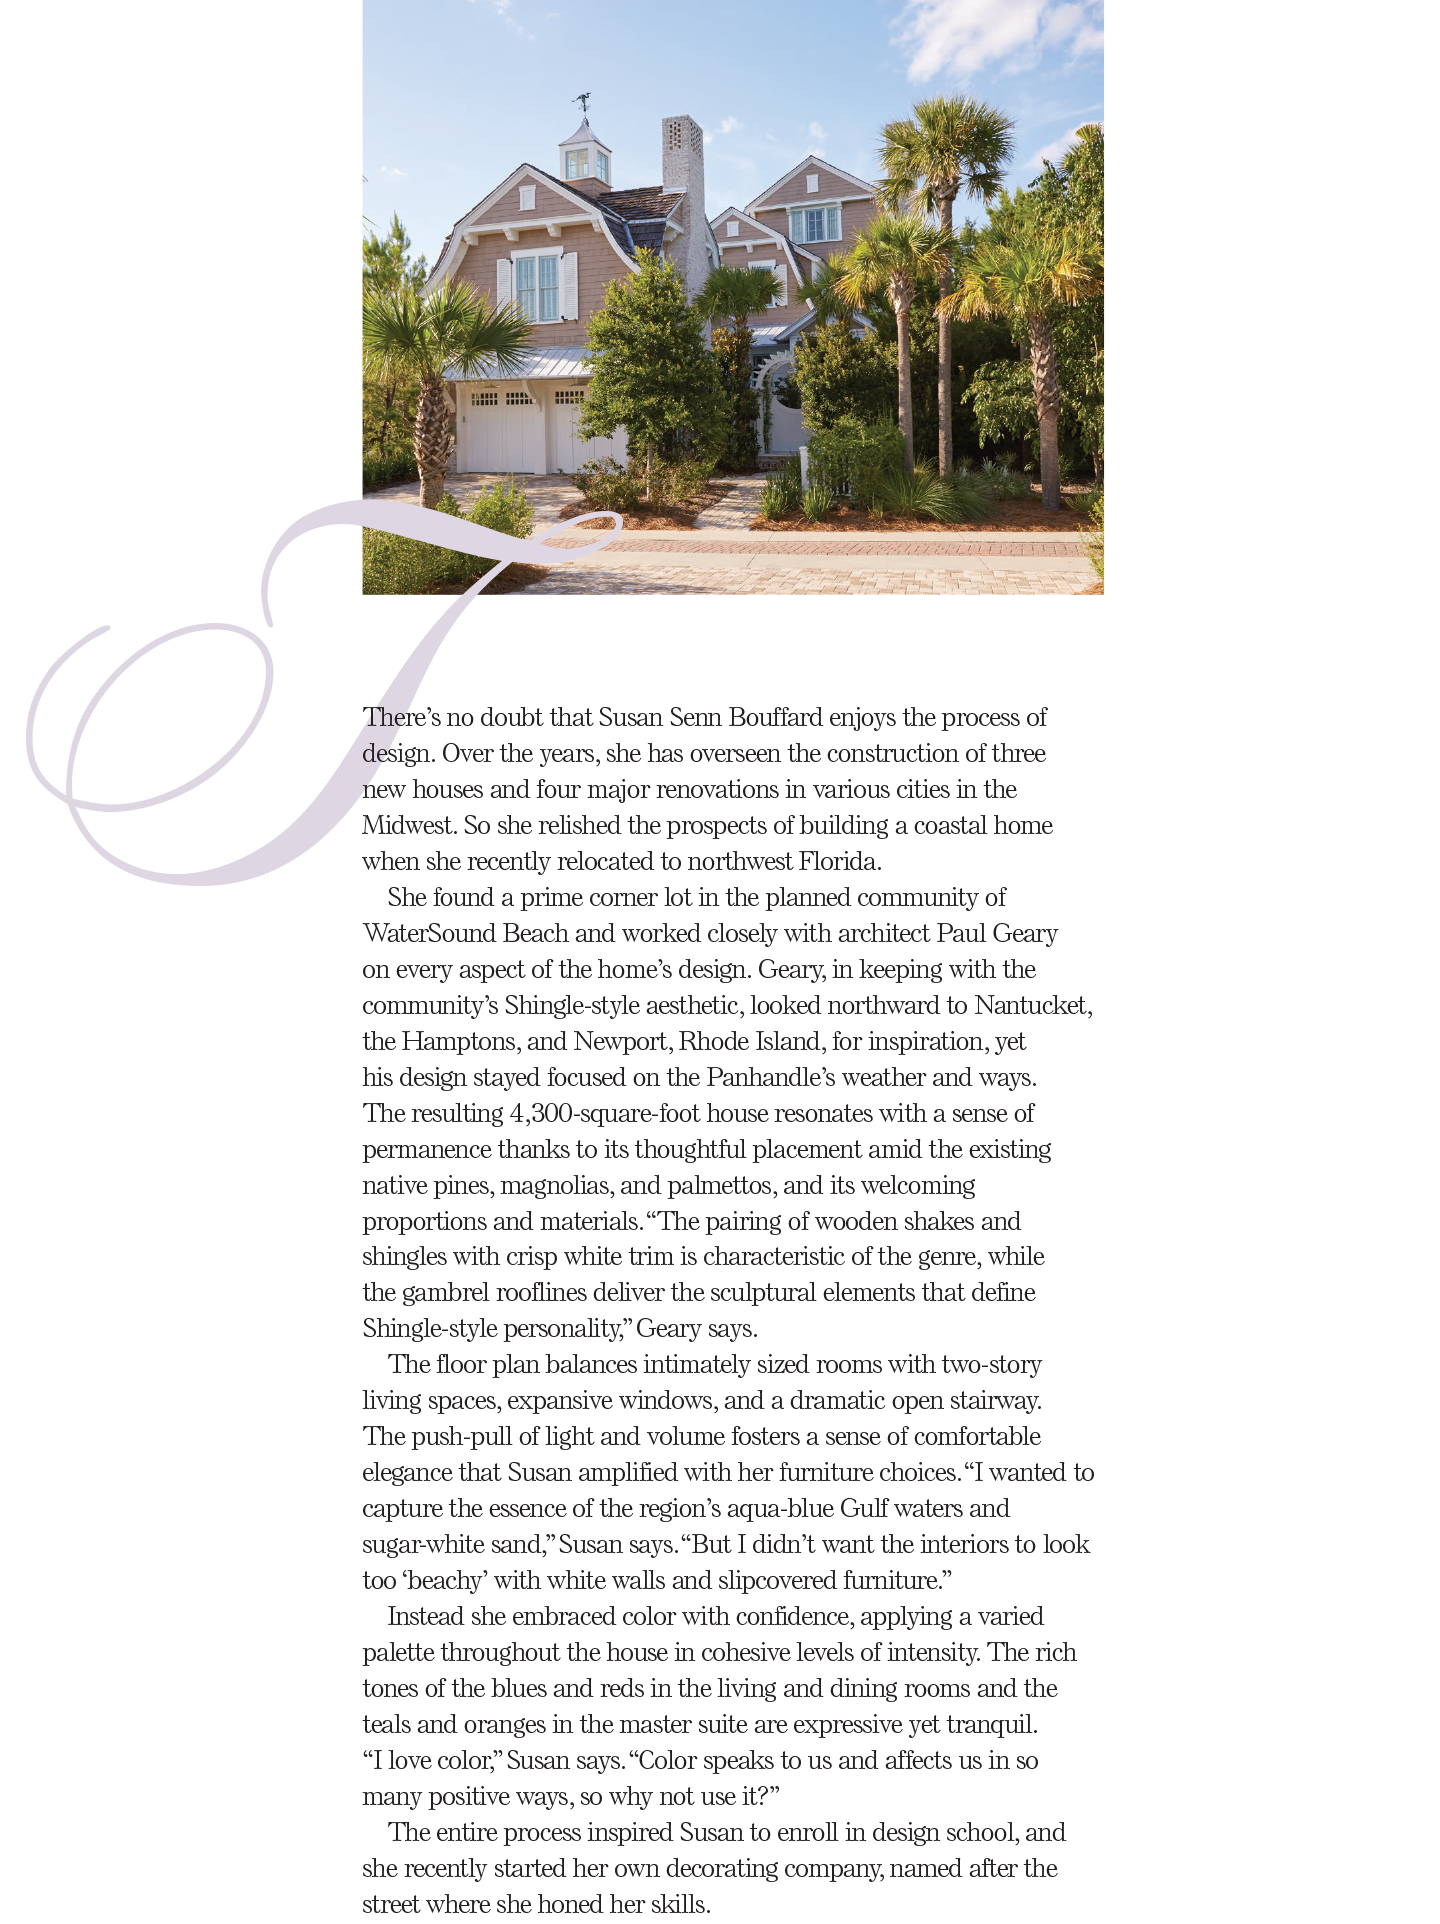 104-111-EH54554-Seaside-Charm-pg107.png